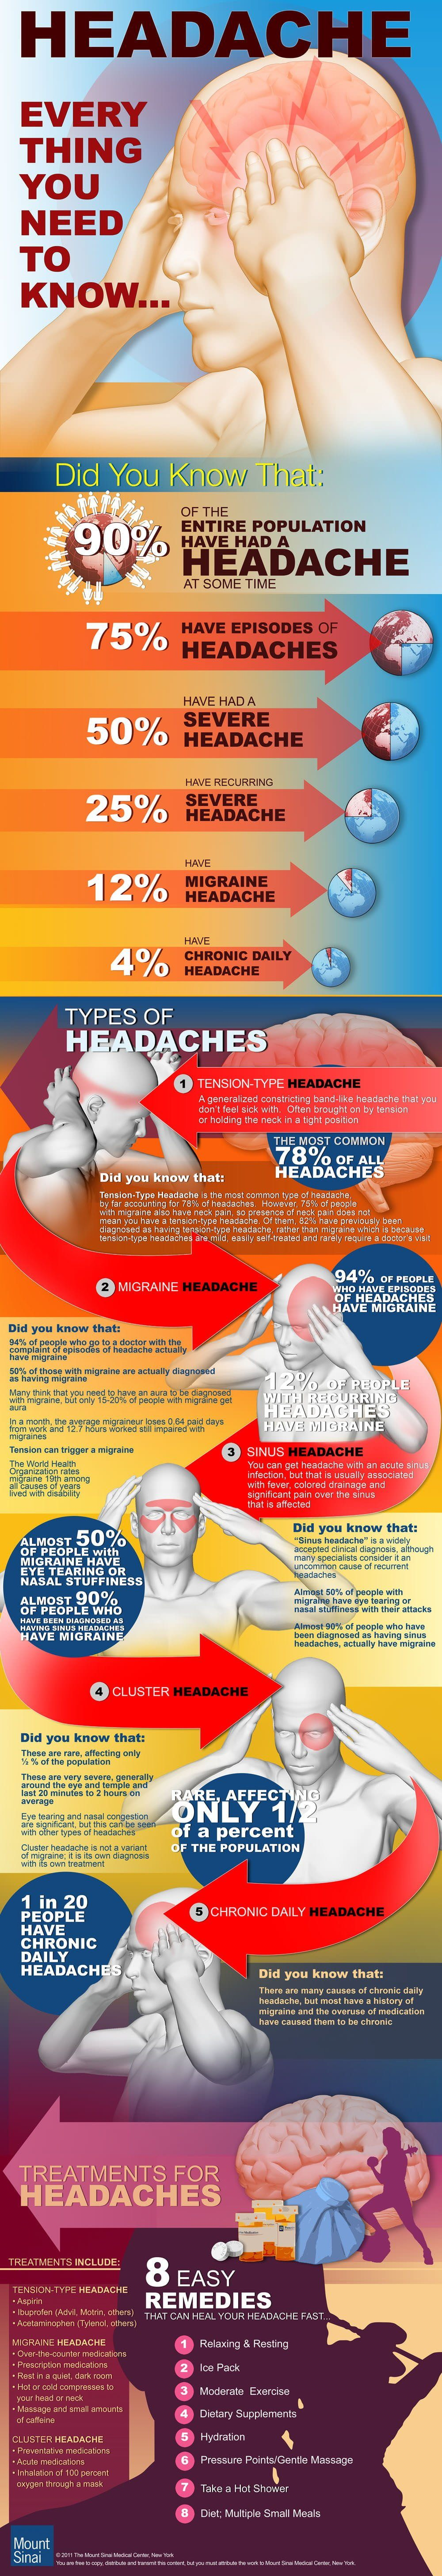 All About Headaches [INFOGRAPHIC]